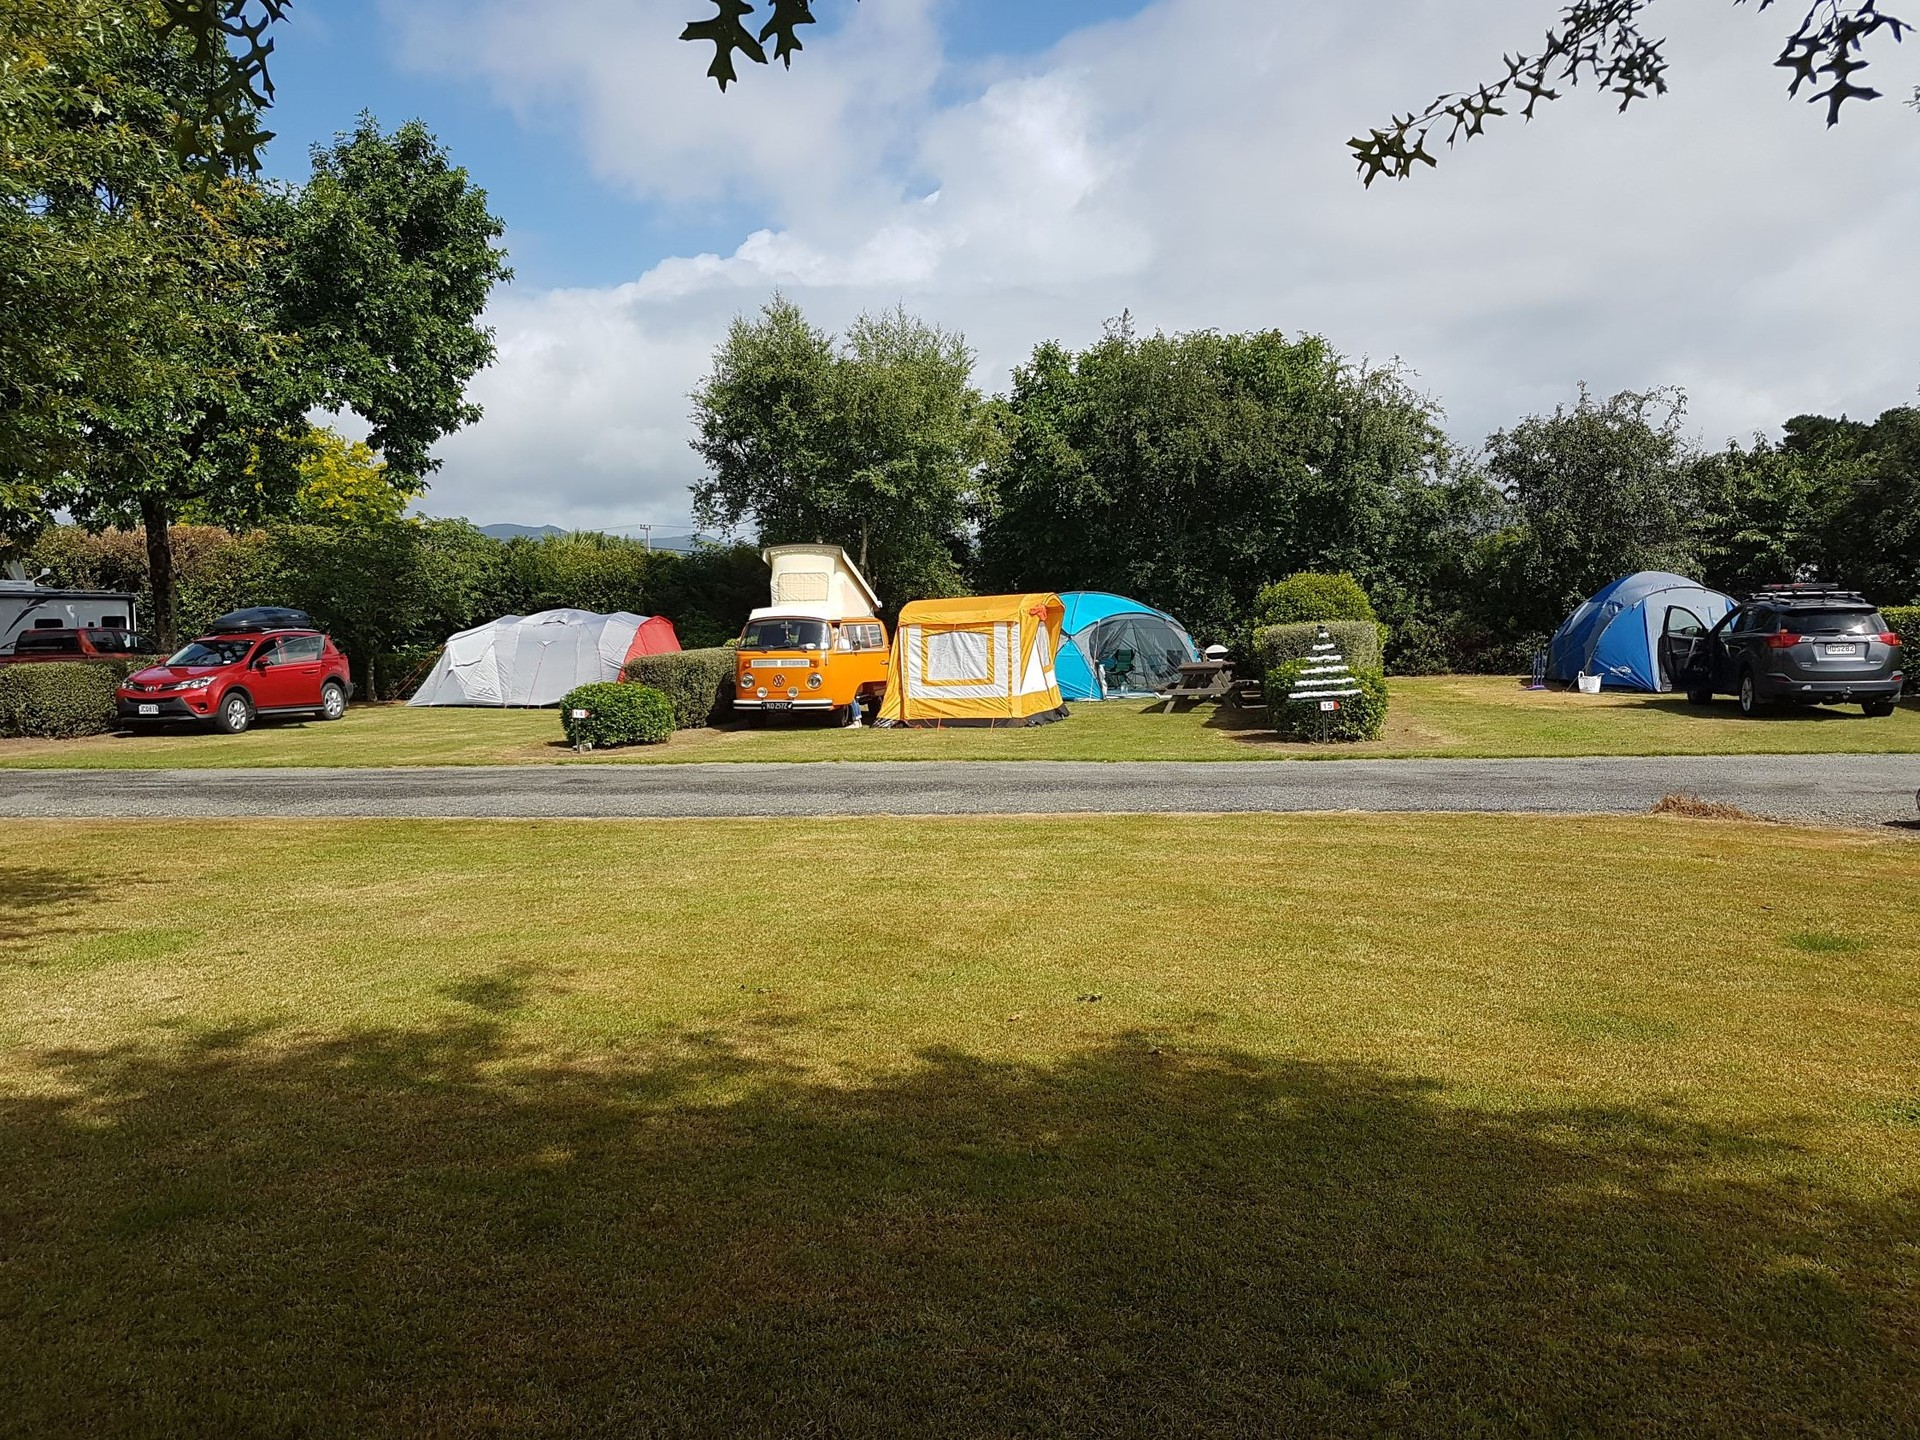 A charming and well kept holiday park